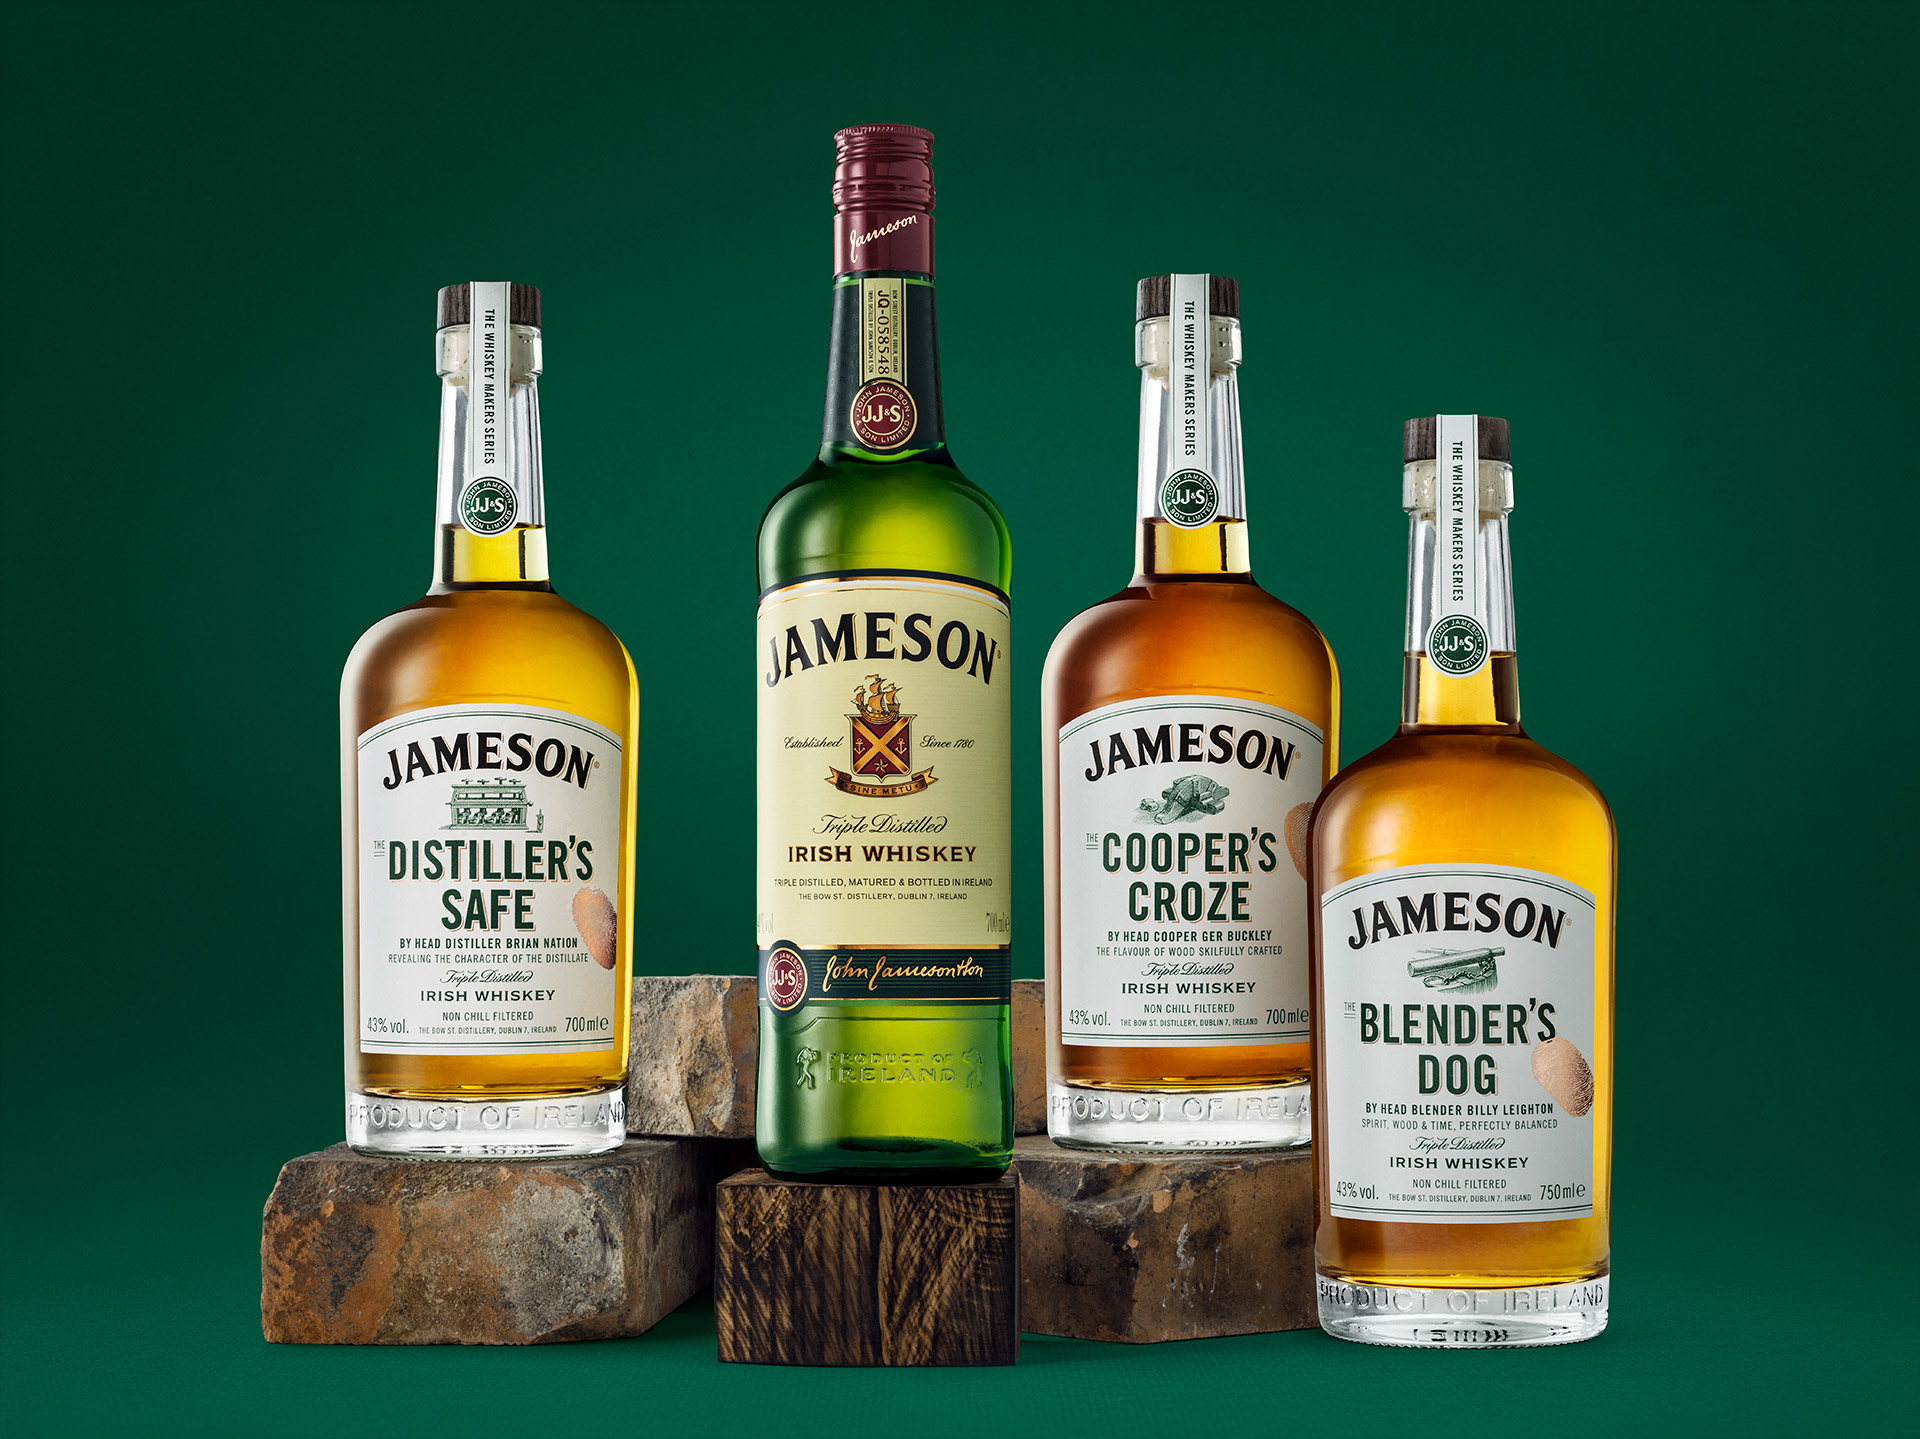 jameson_corporate_makers_family_green_WEB.jpg